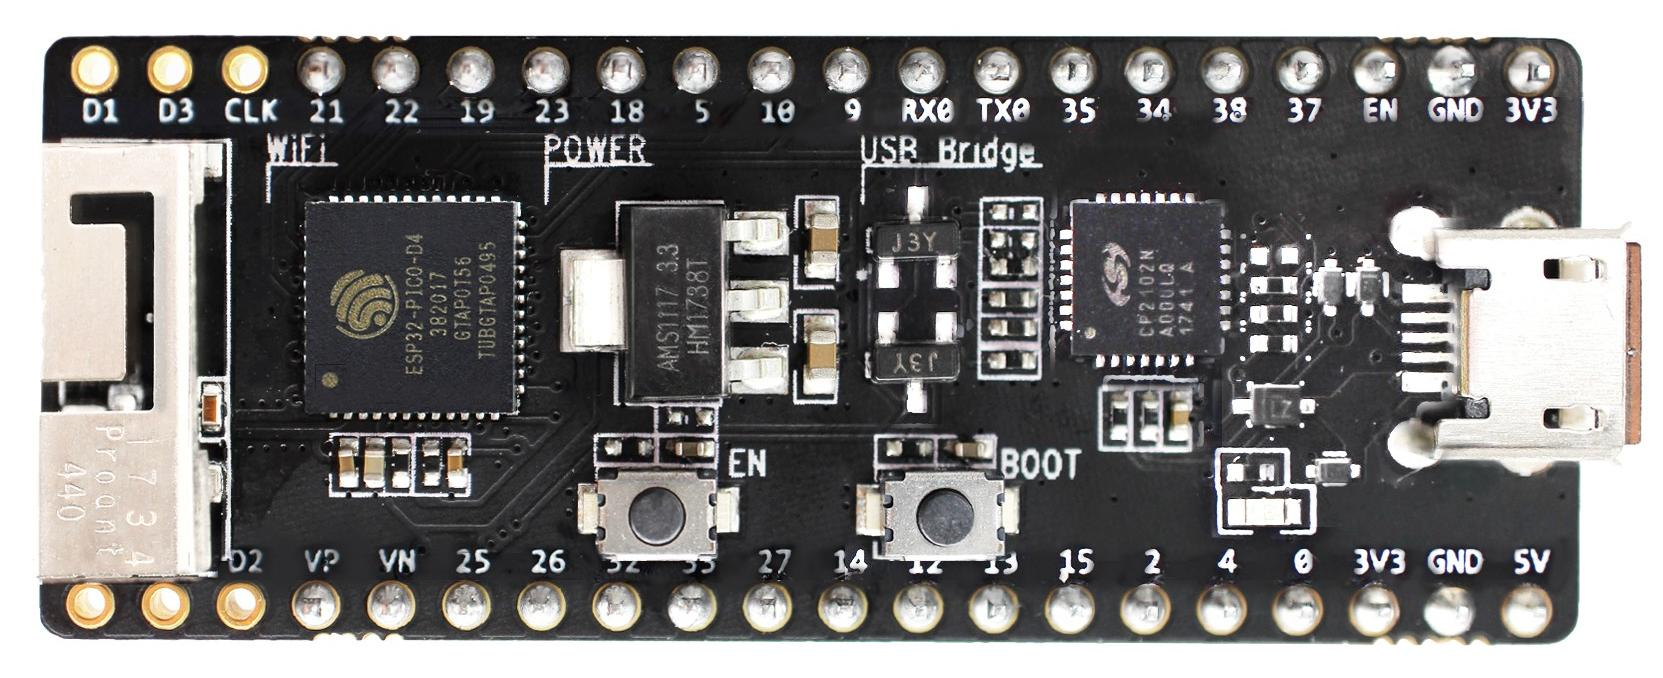 ESP32-PICO-KIT V4.1 board